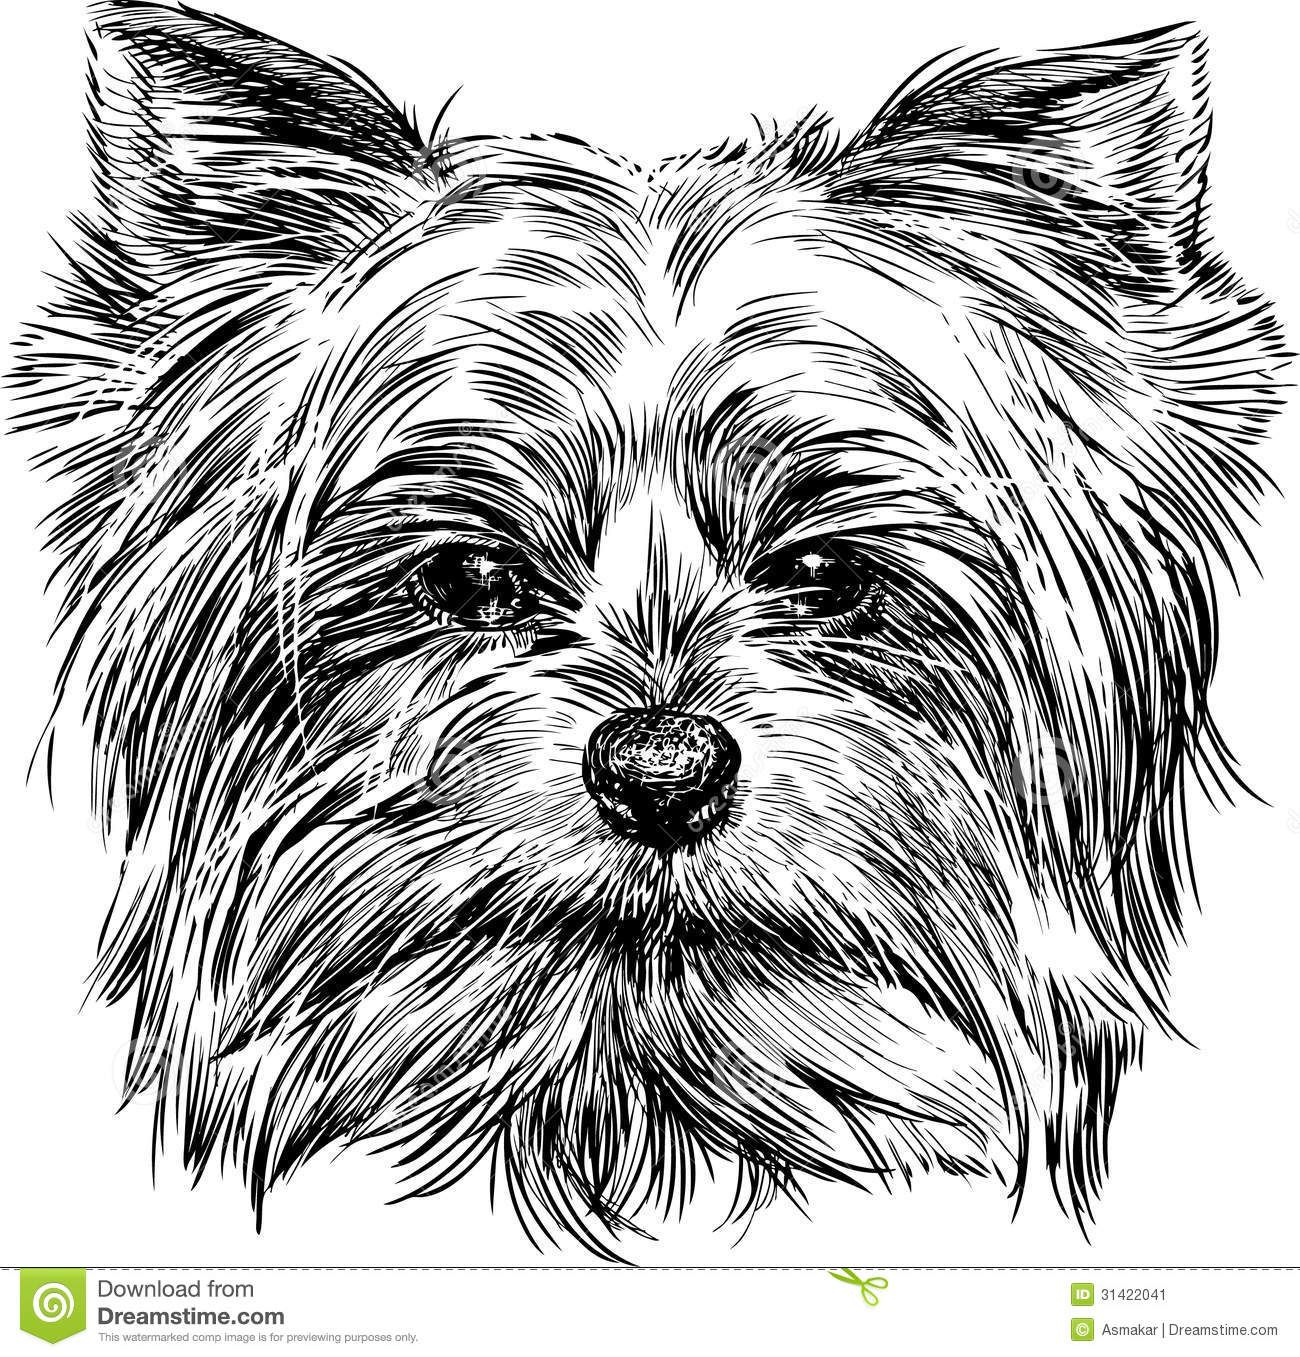 Pin By Michelle Ross On Zentangle Yorkie Pics Dog Design Dog Vector Yorkie